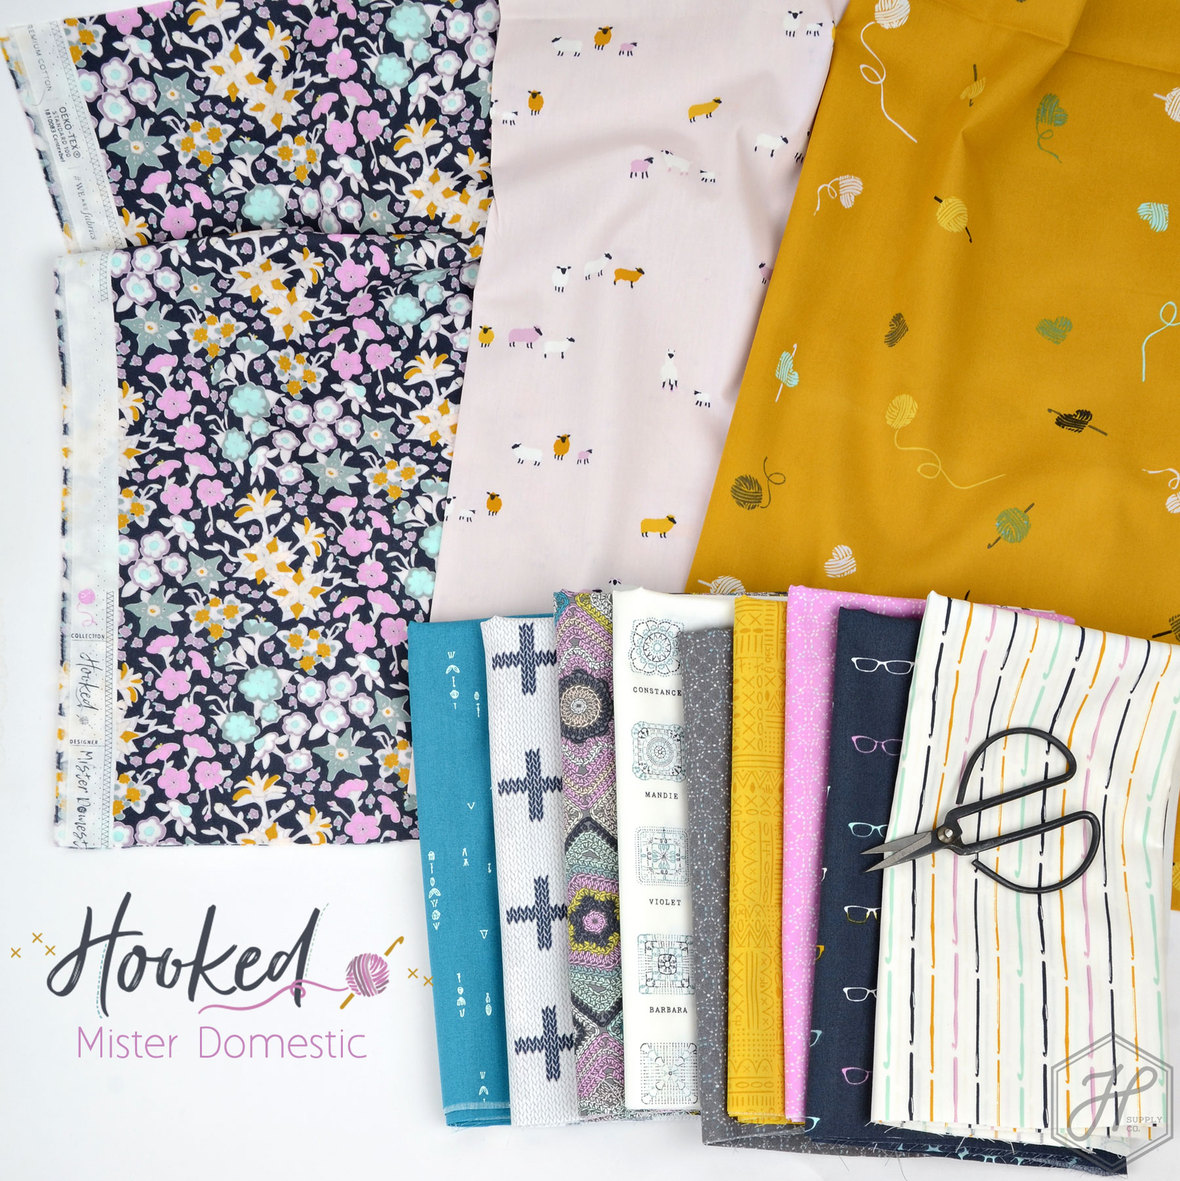 Hooked-Fabric-Poster-Mister-Domestic-for-Art-Gallery-at-Hawthorne-Supply-Co